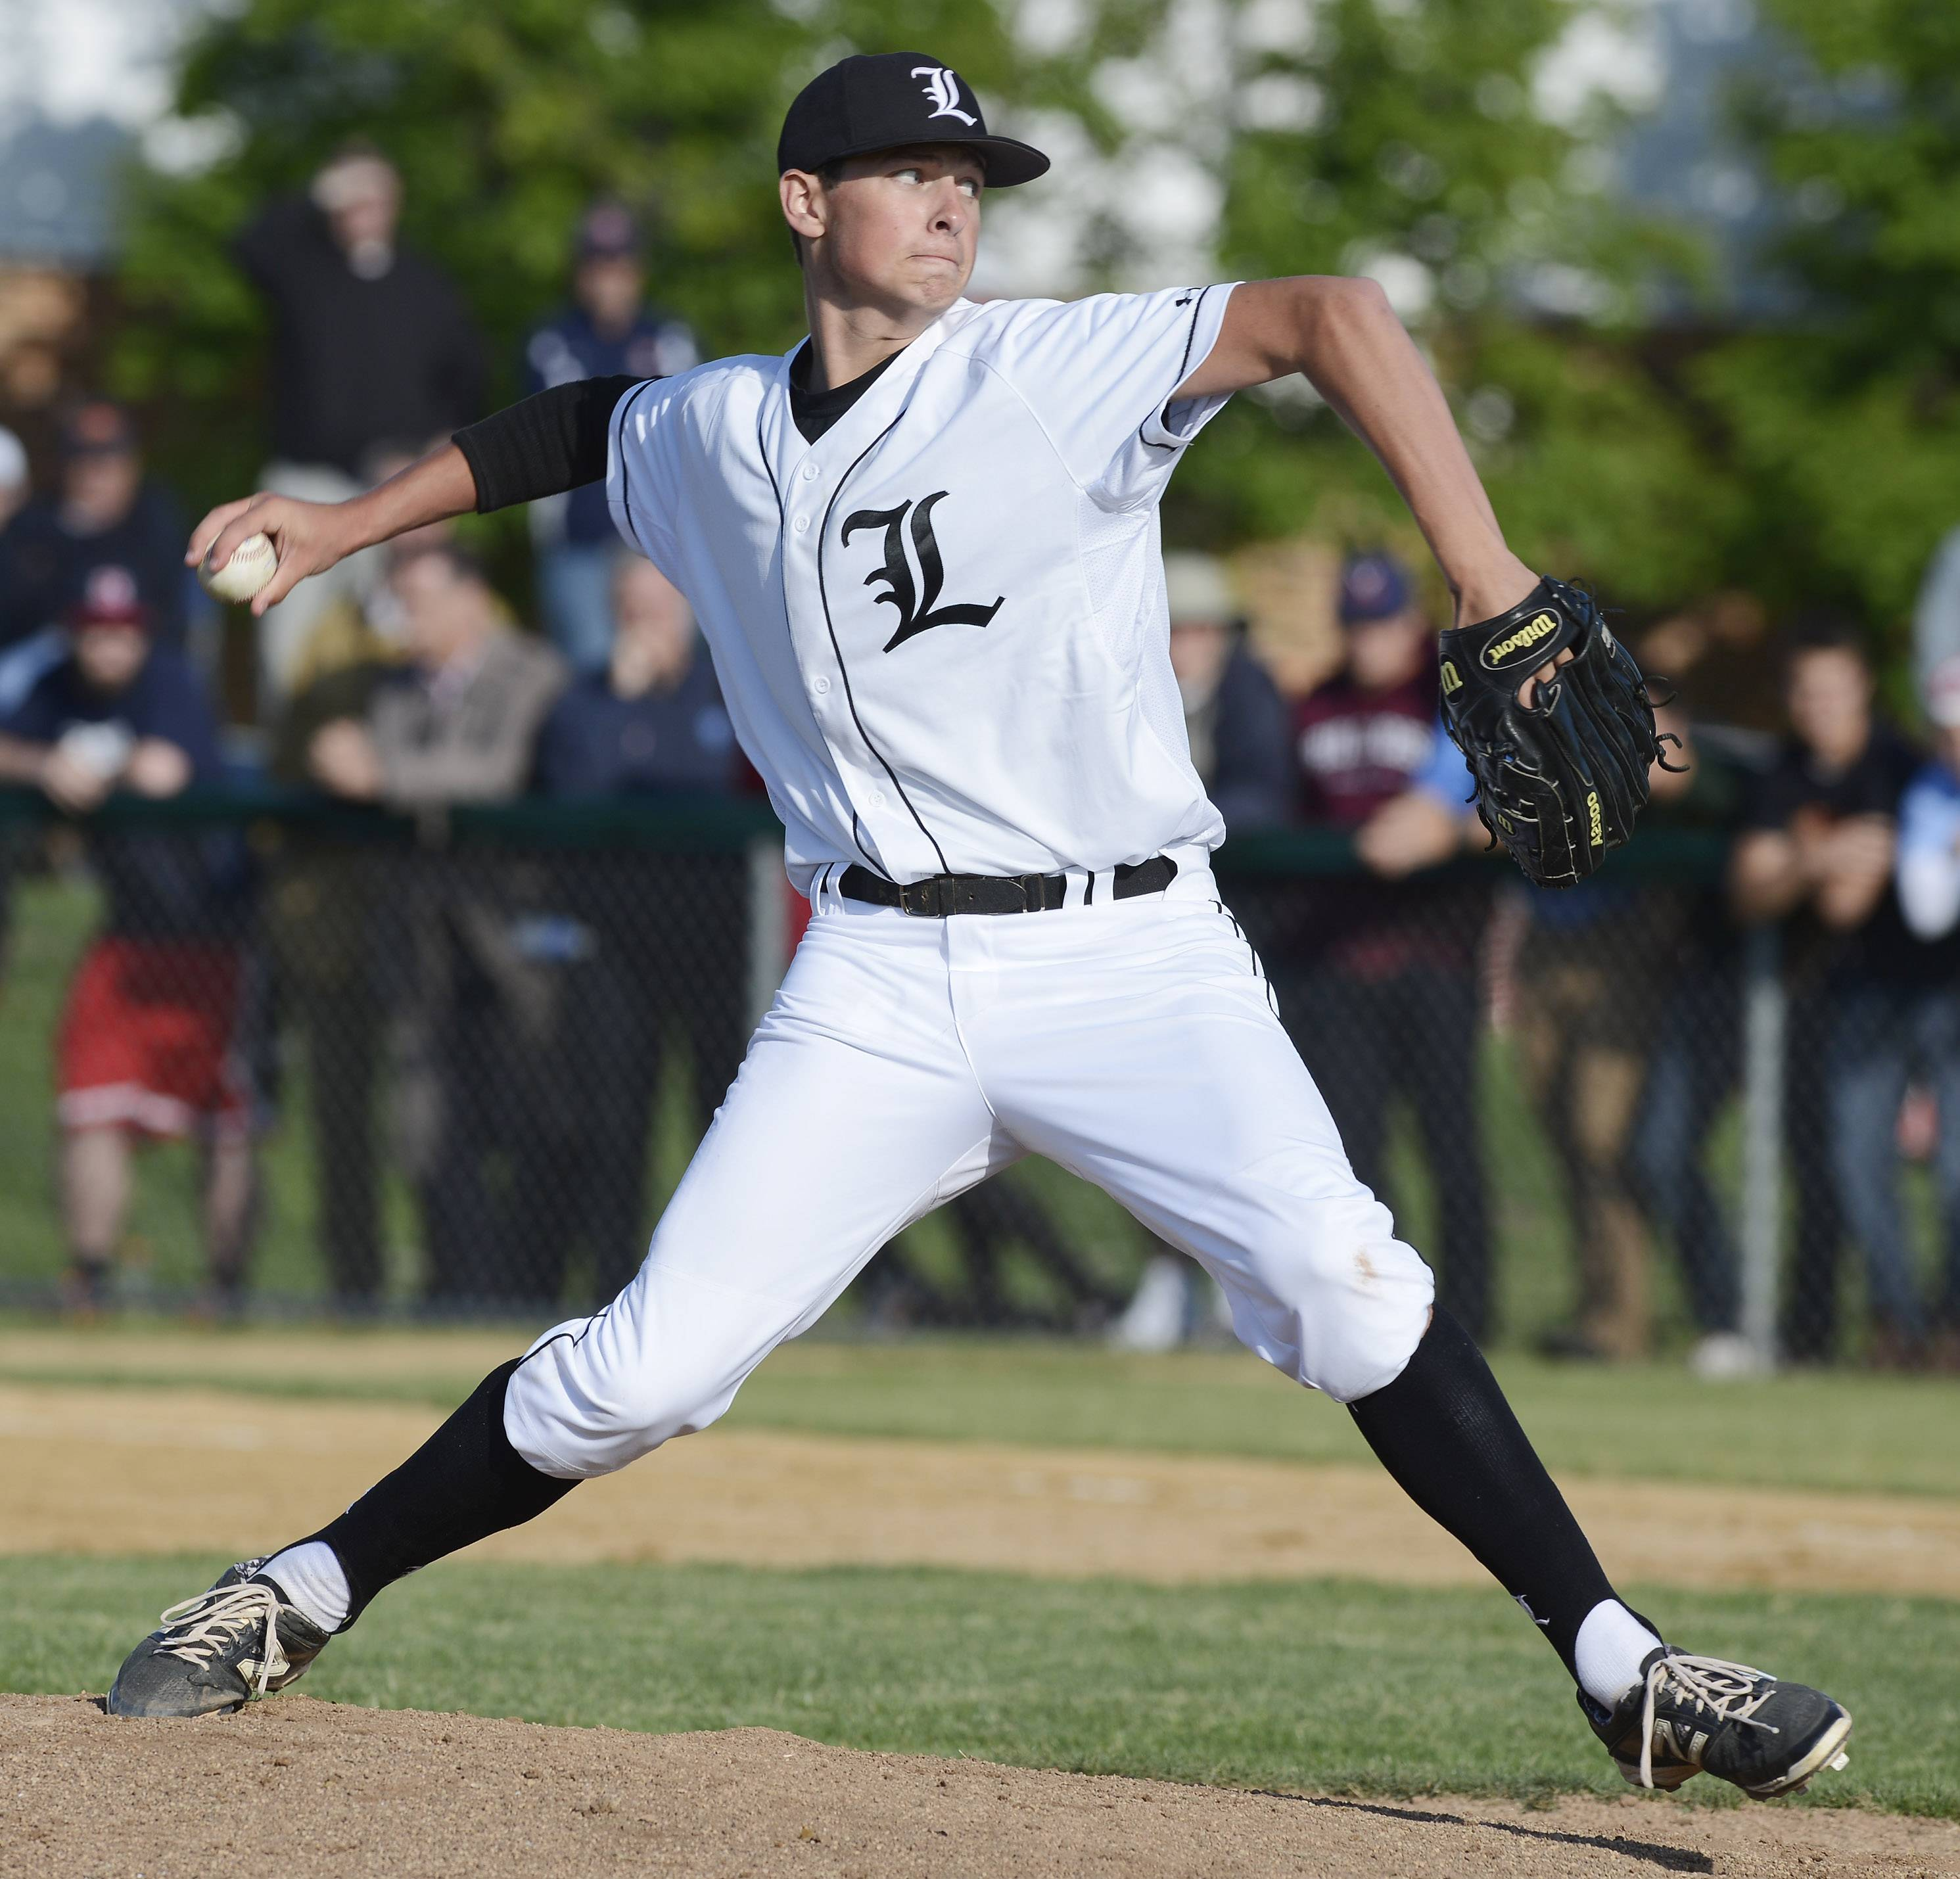 Libertyville's Jeff Barton delivers during Class 4A baseball sectional semifinal play at Glenbrook South on Wednesday.